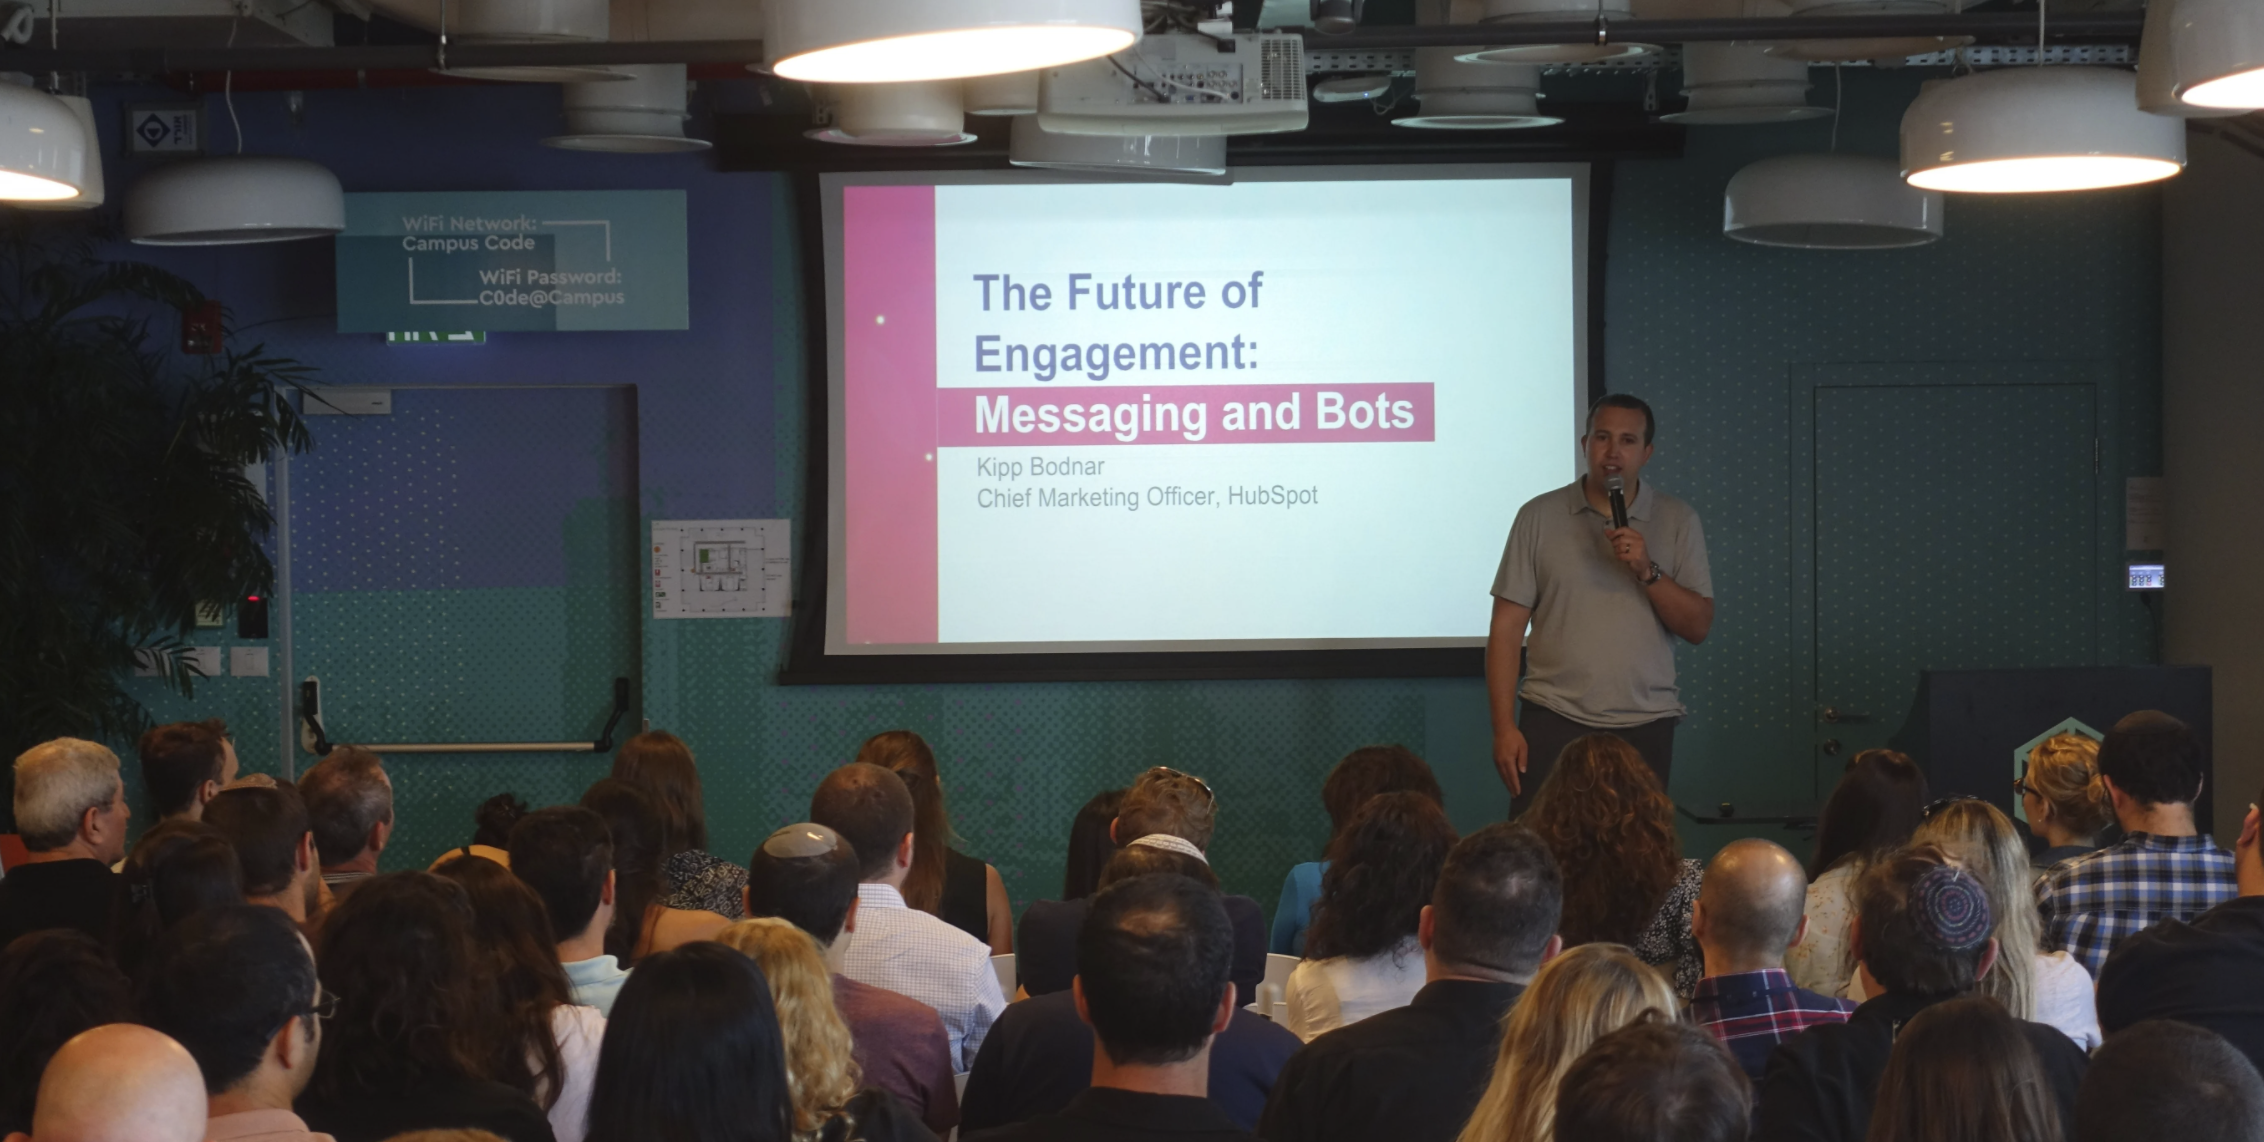 THE FUTURE OF ENGAGEMENT: MESSAGING & BOTS